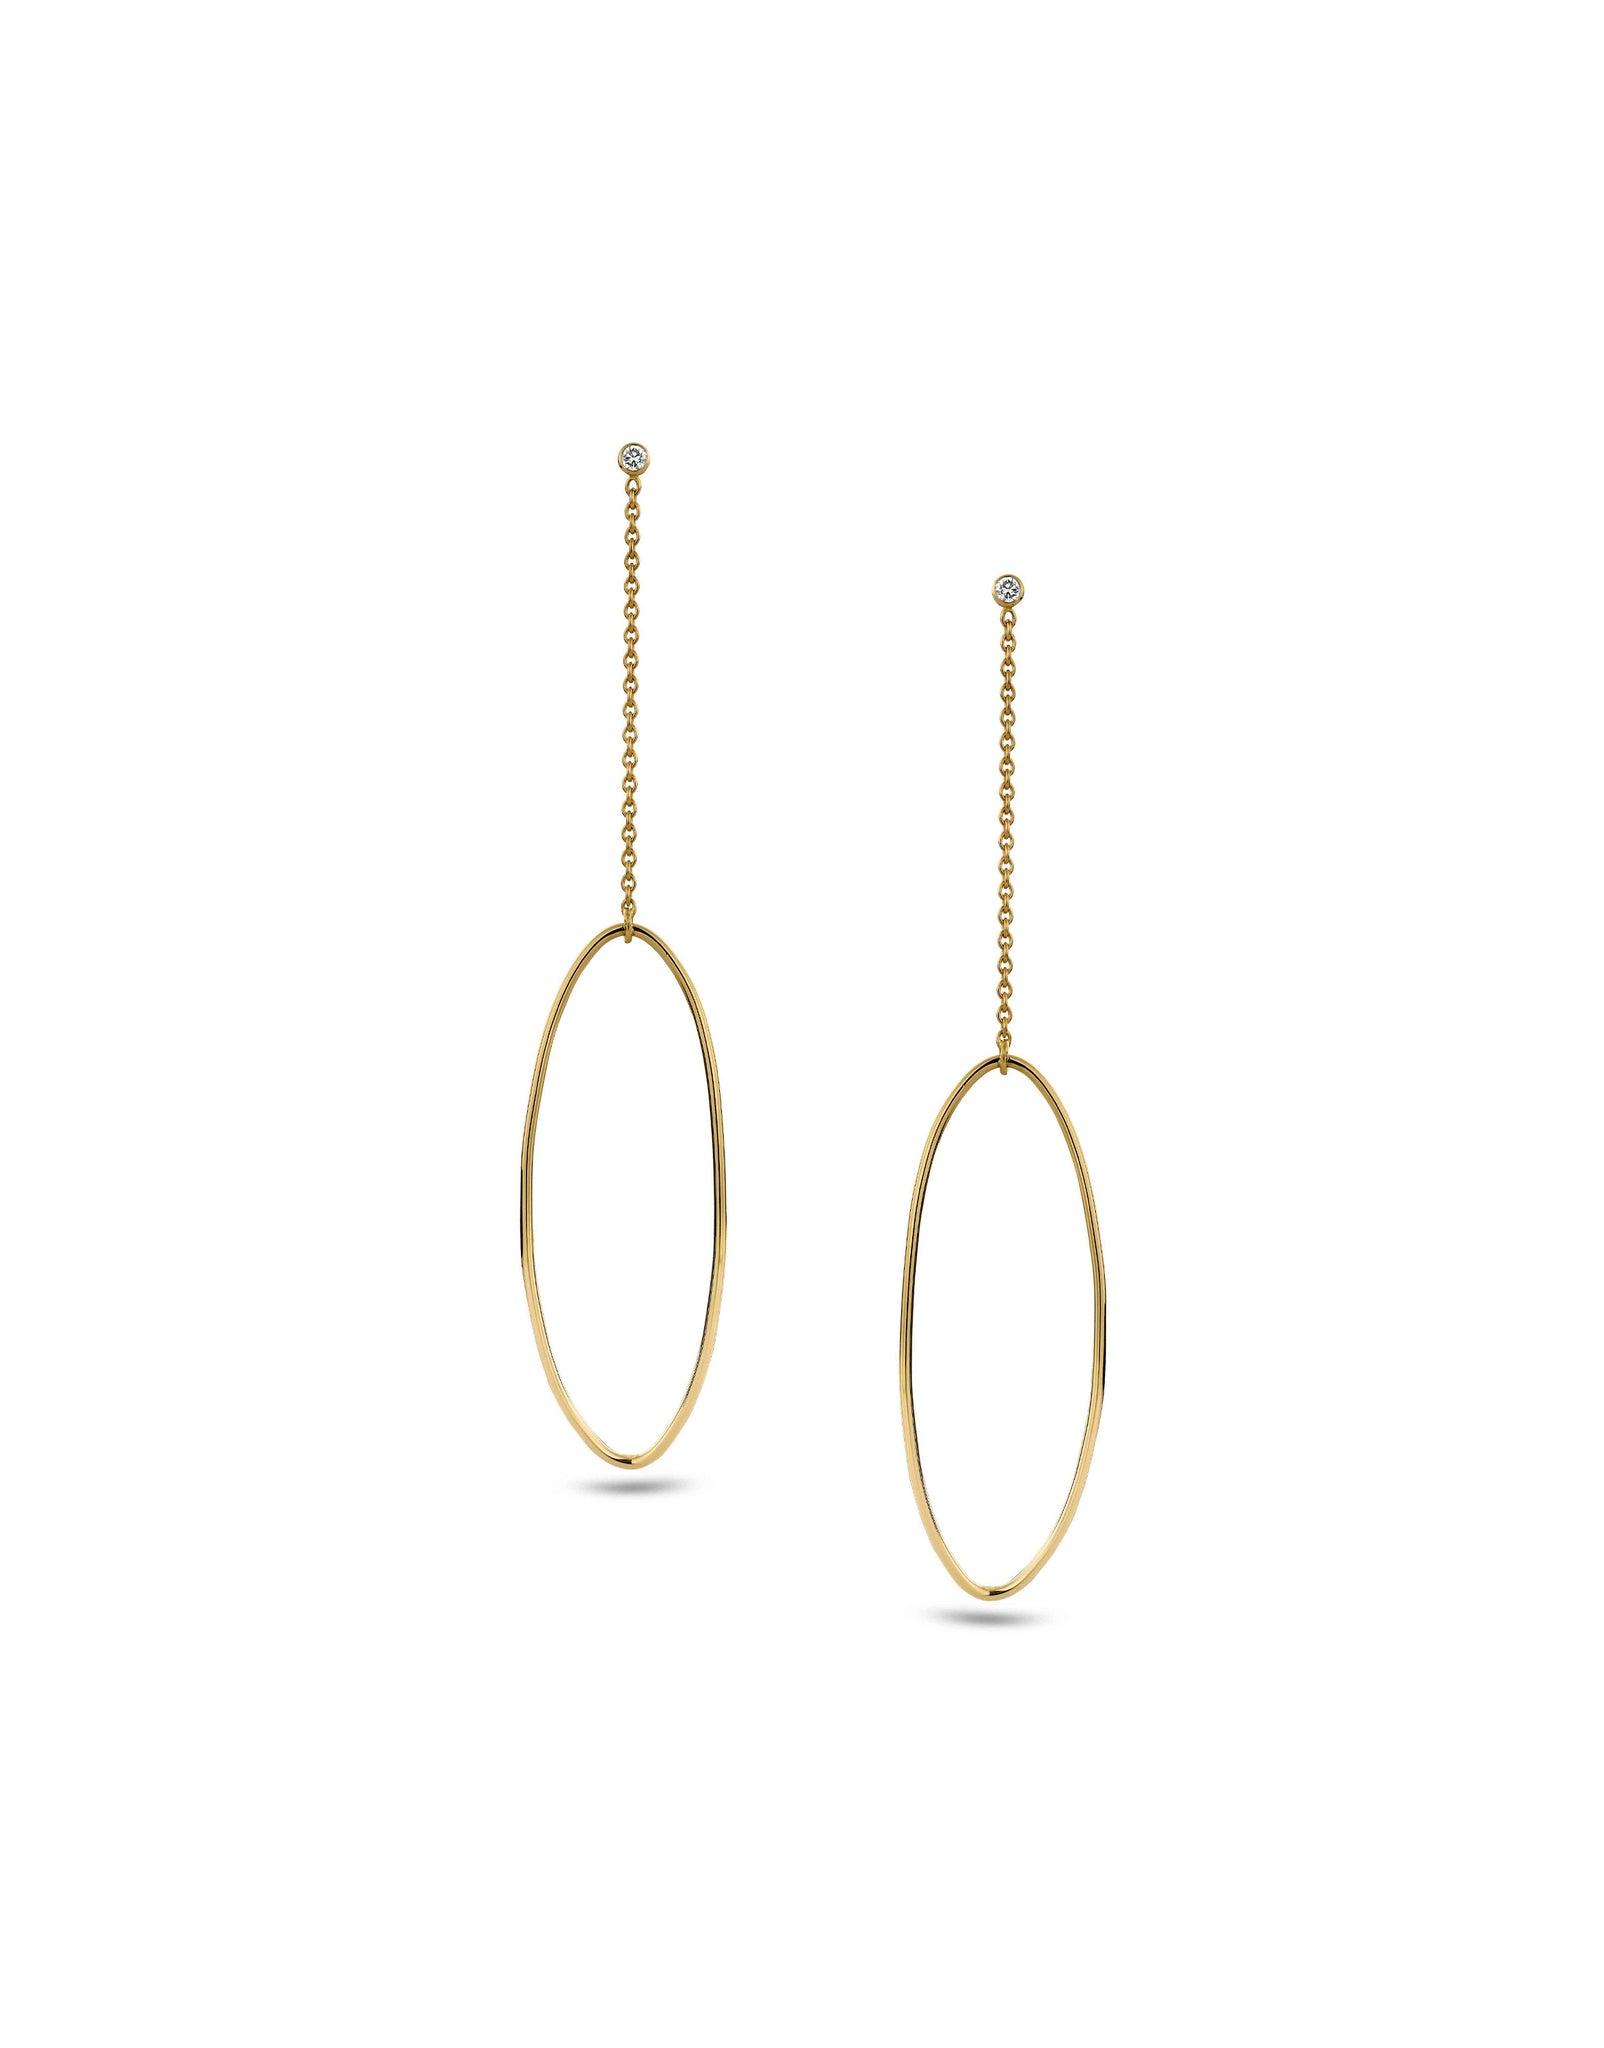 Amande earrings in 18k gold and white diamond